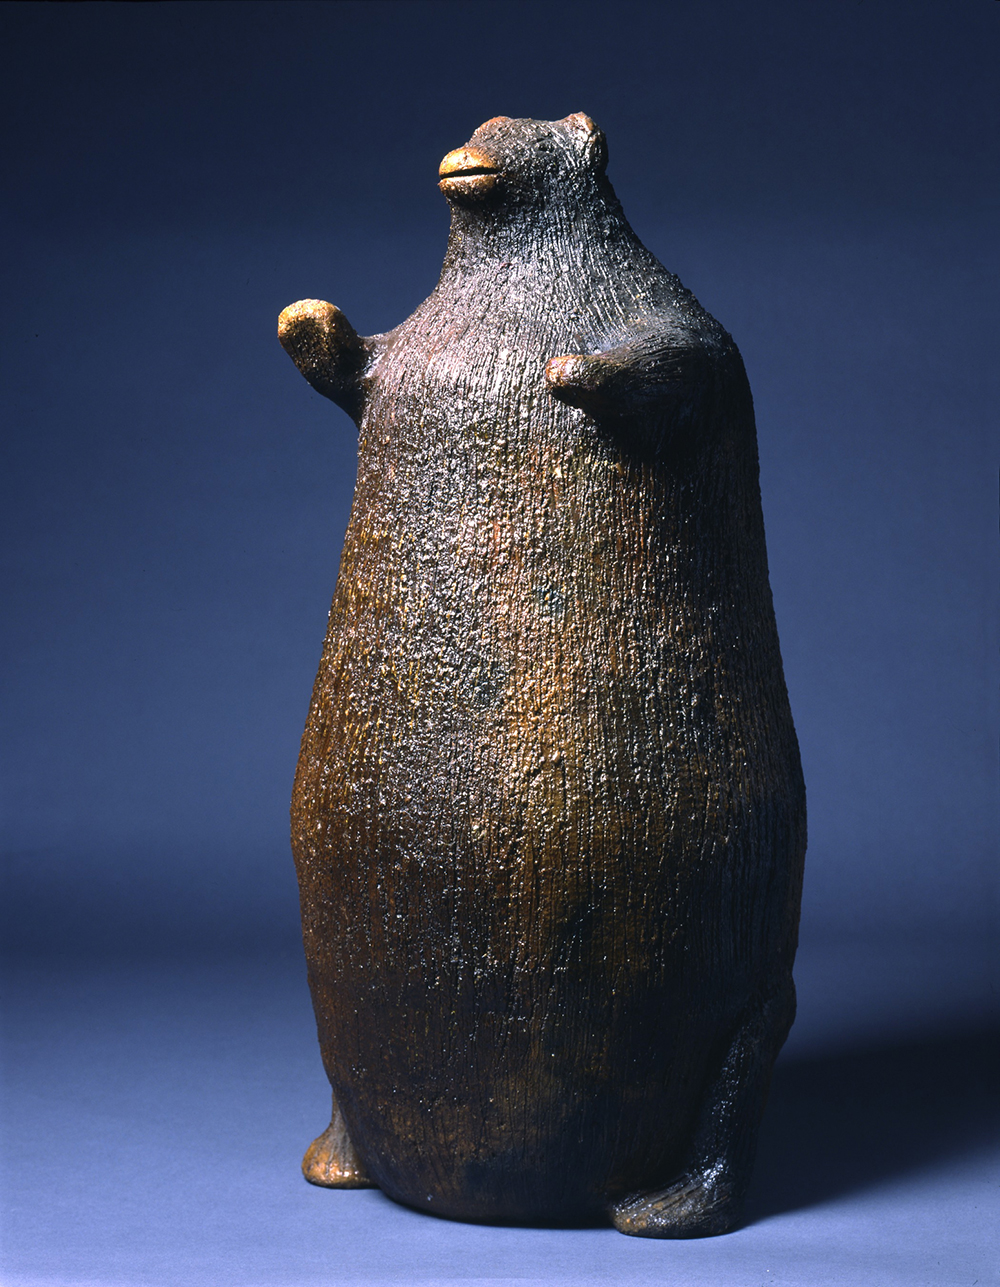 Photograph of a clay figurine of a bear by Louise Goodman, 1990. Smithsonian American Art Museum, Gift of Chuck and Jan Rosenak and museum purchase made possible by Mrs. Gibson Fahnestock.